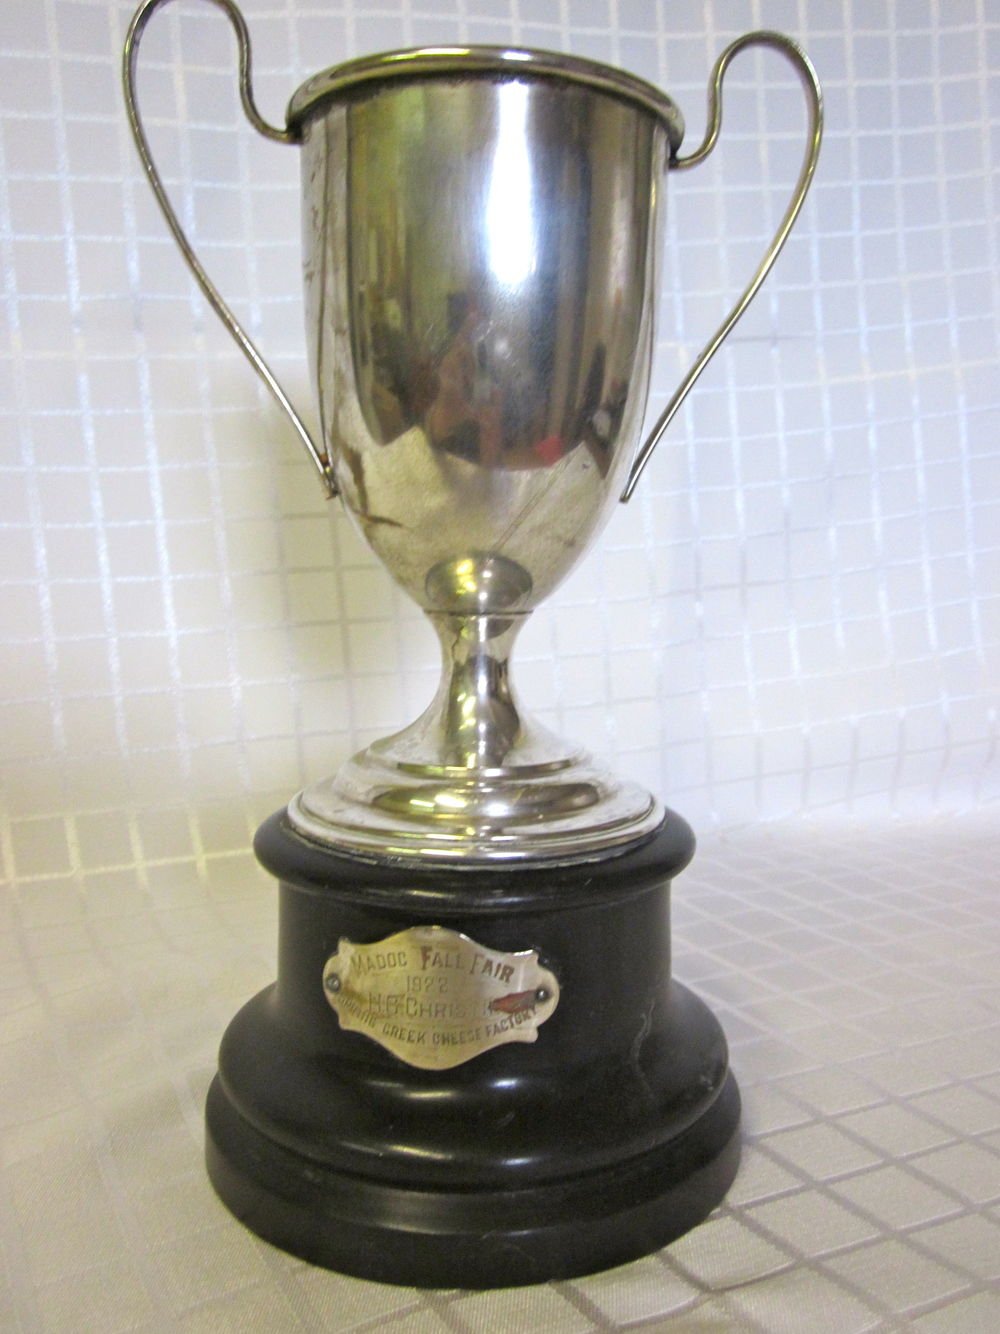 Madoc Fall Fair Trophy